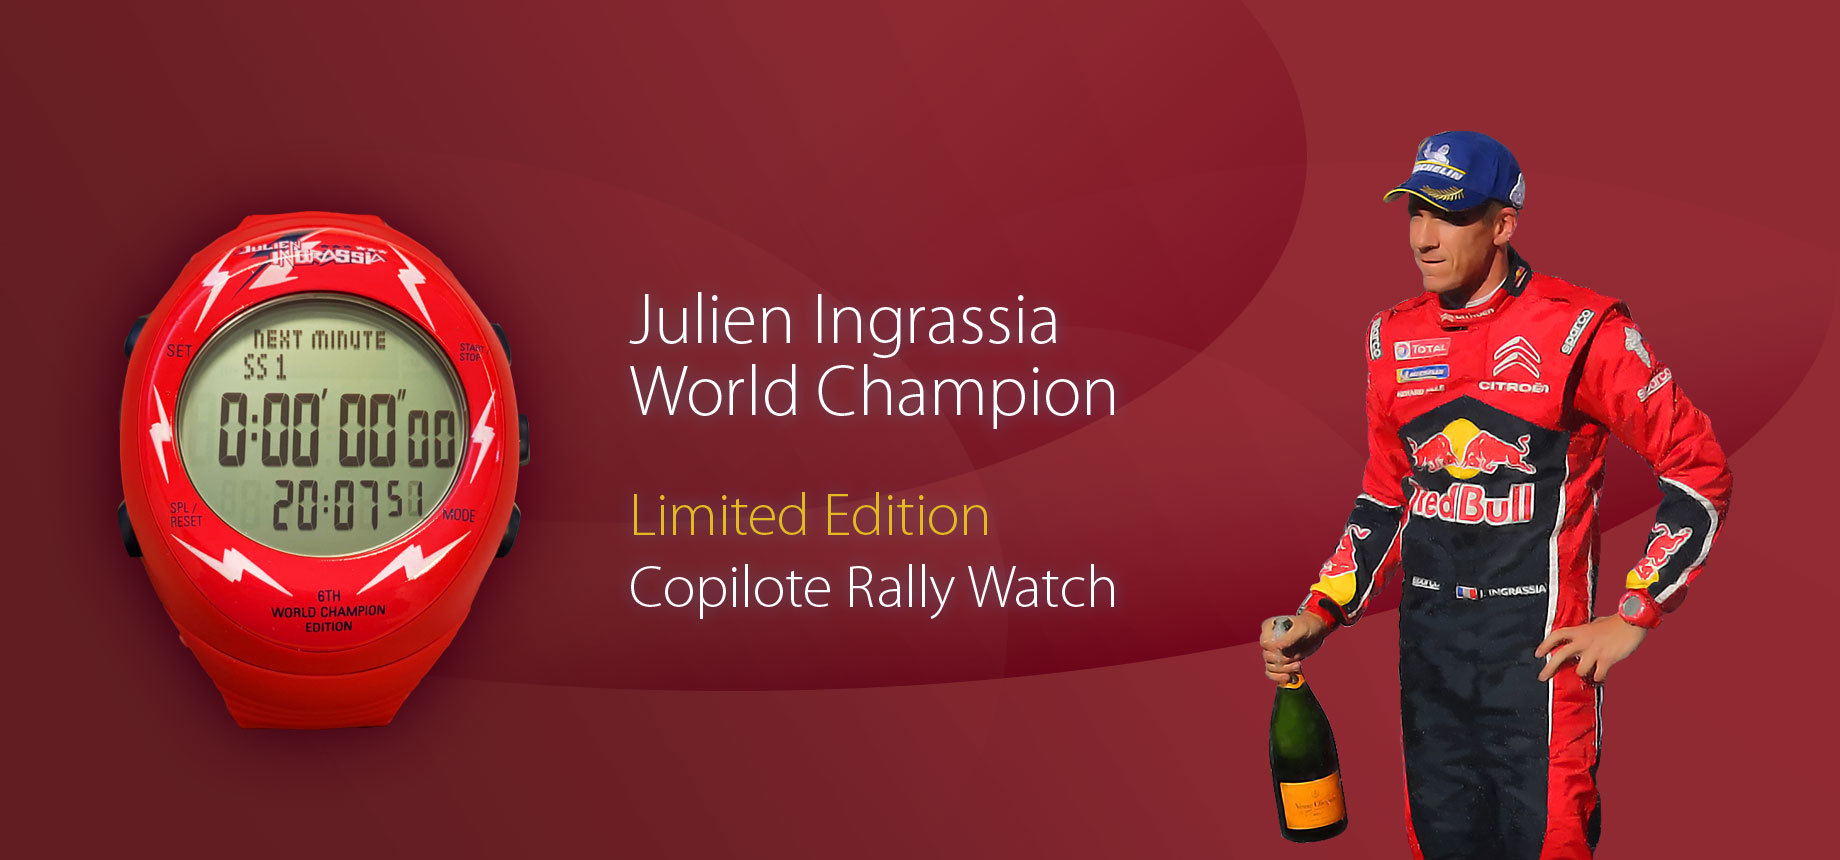 Julien Ingrassia 2016 Limited Edition Copilote Rally Watch